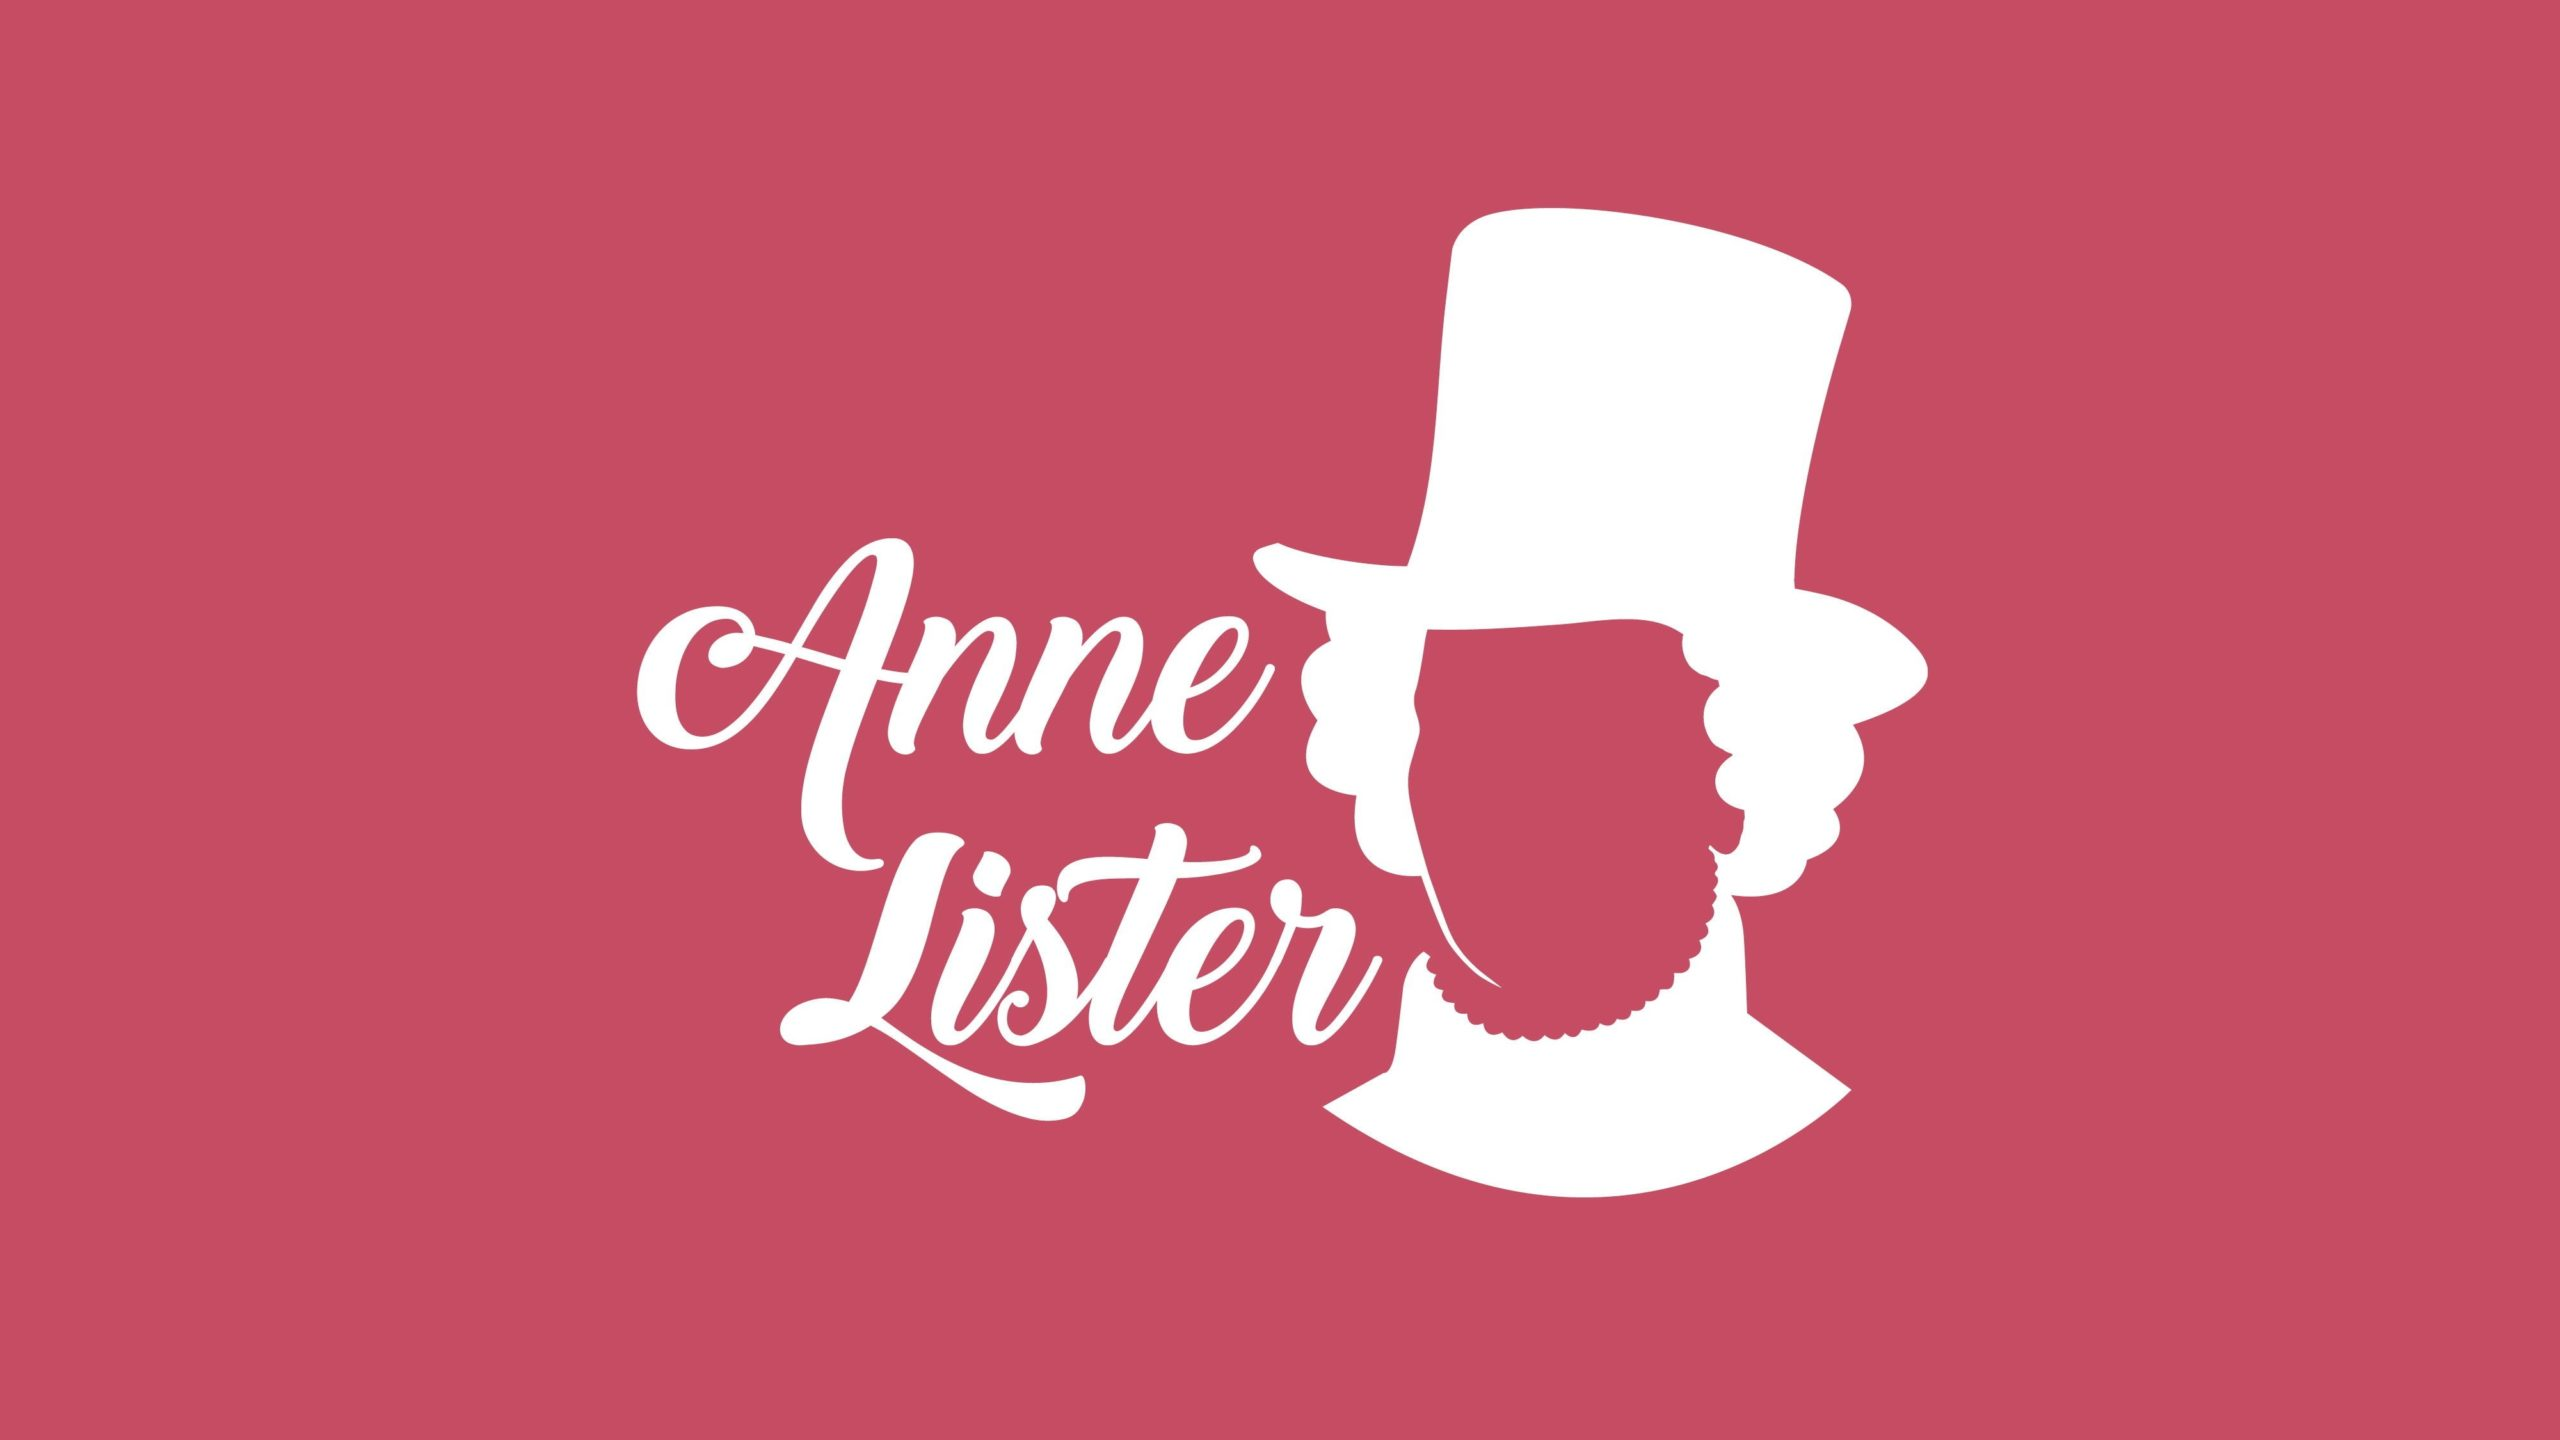 Anne Lister's Shibden: Her Private Face